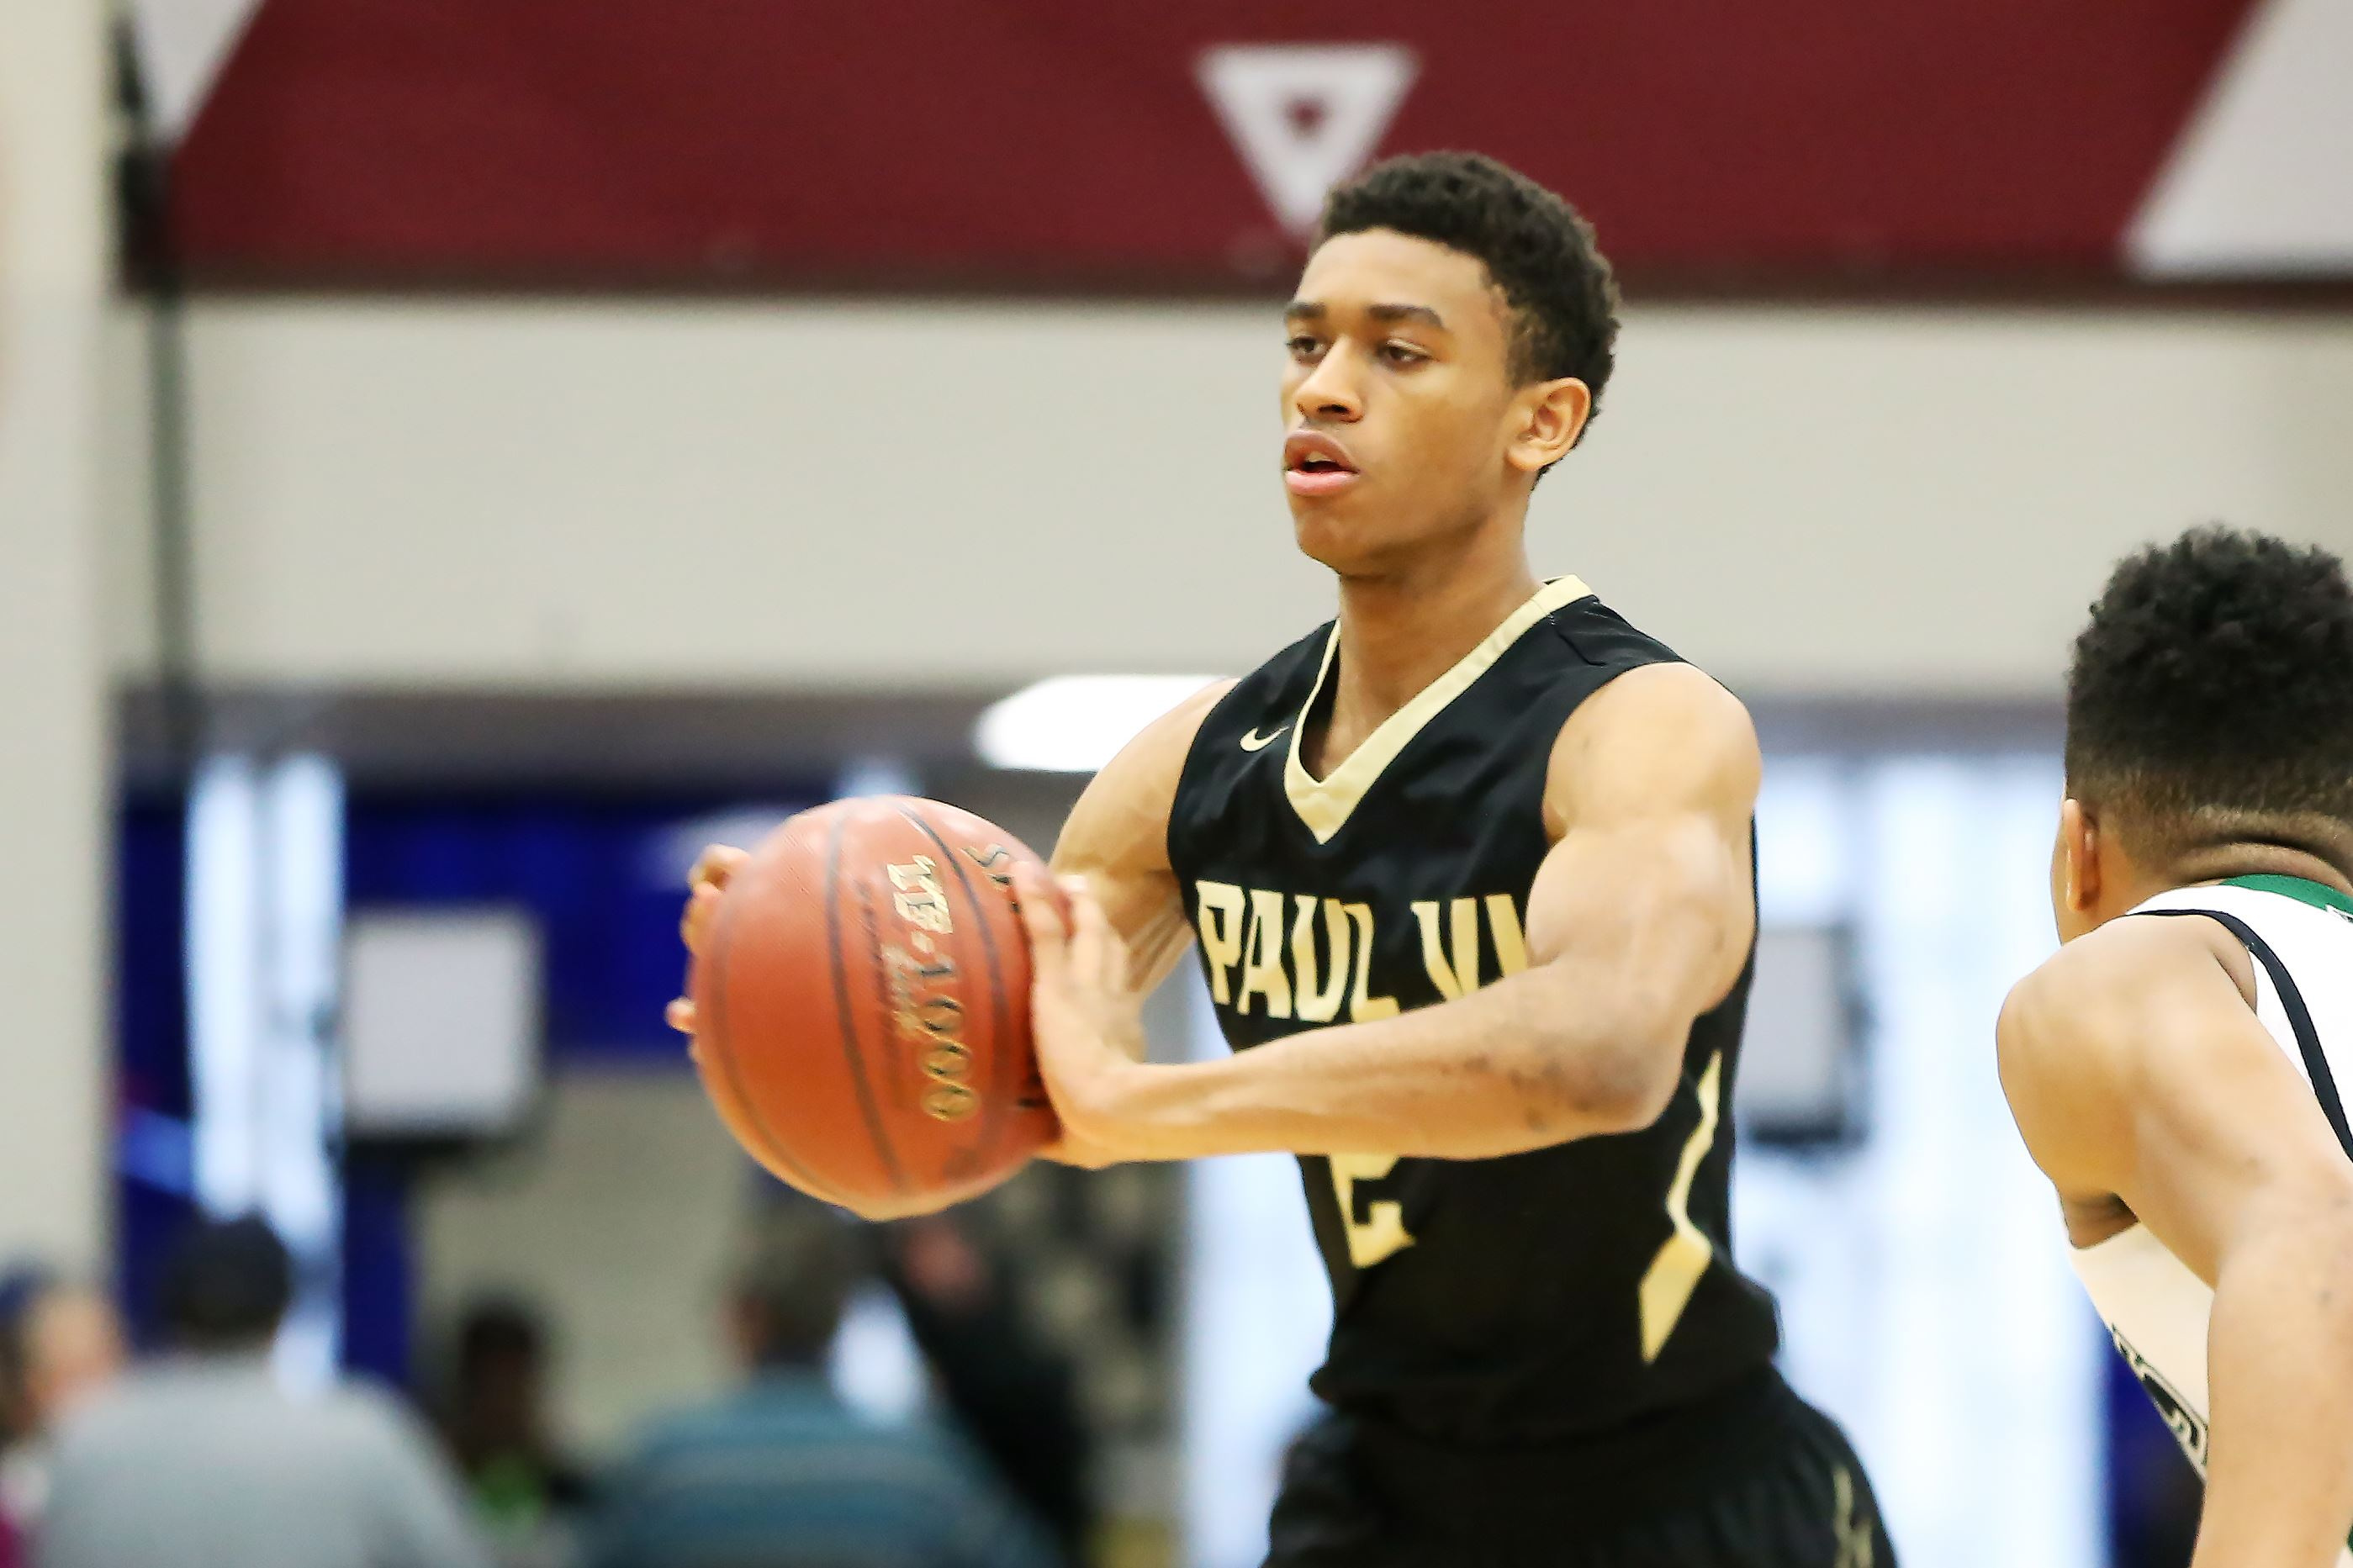 Pitt recruit Aaron Thompson released from letter of intent ...